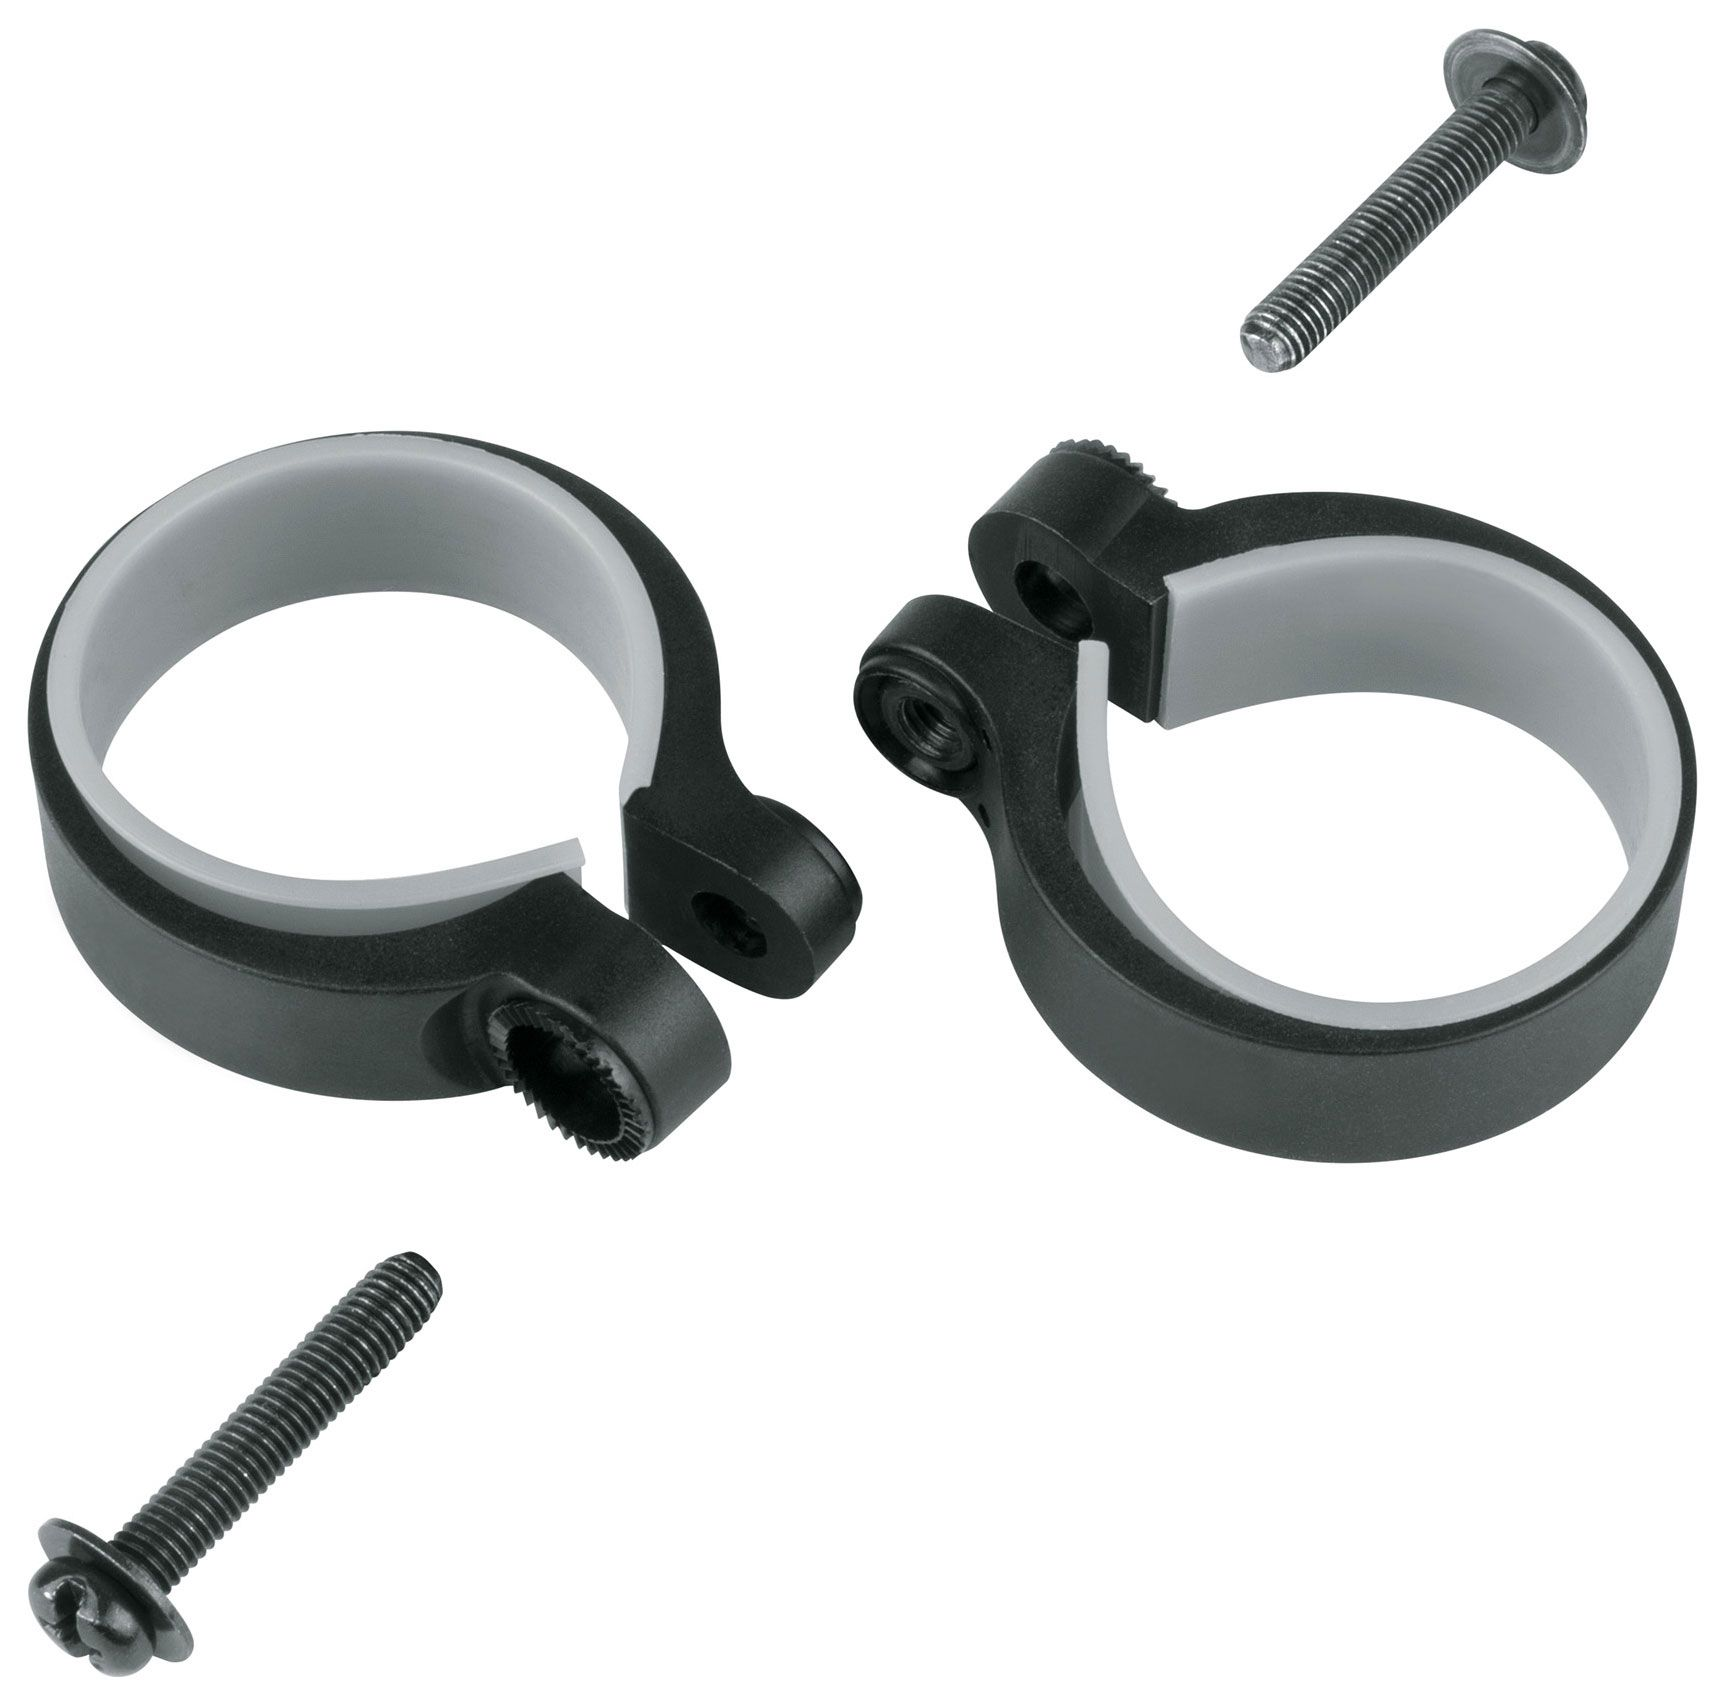 Запчасть SKS Stay Mounting Clamps 2 Pcs. 31,0 - 34,5Mm (SKS-11483)